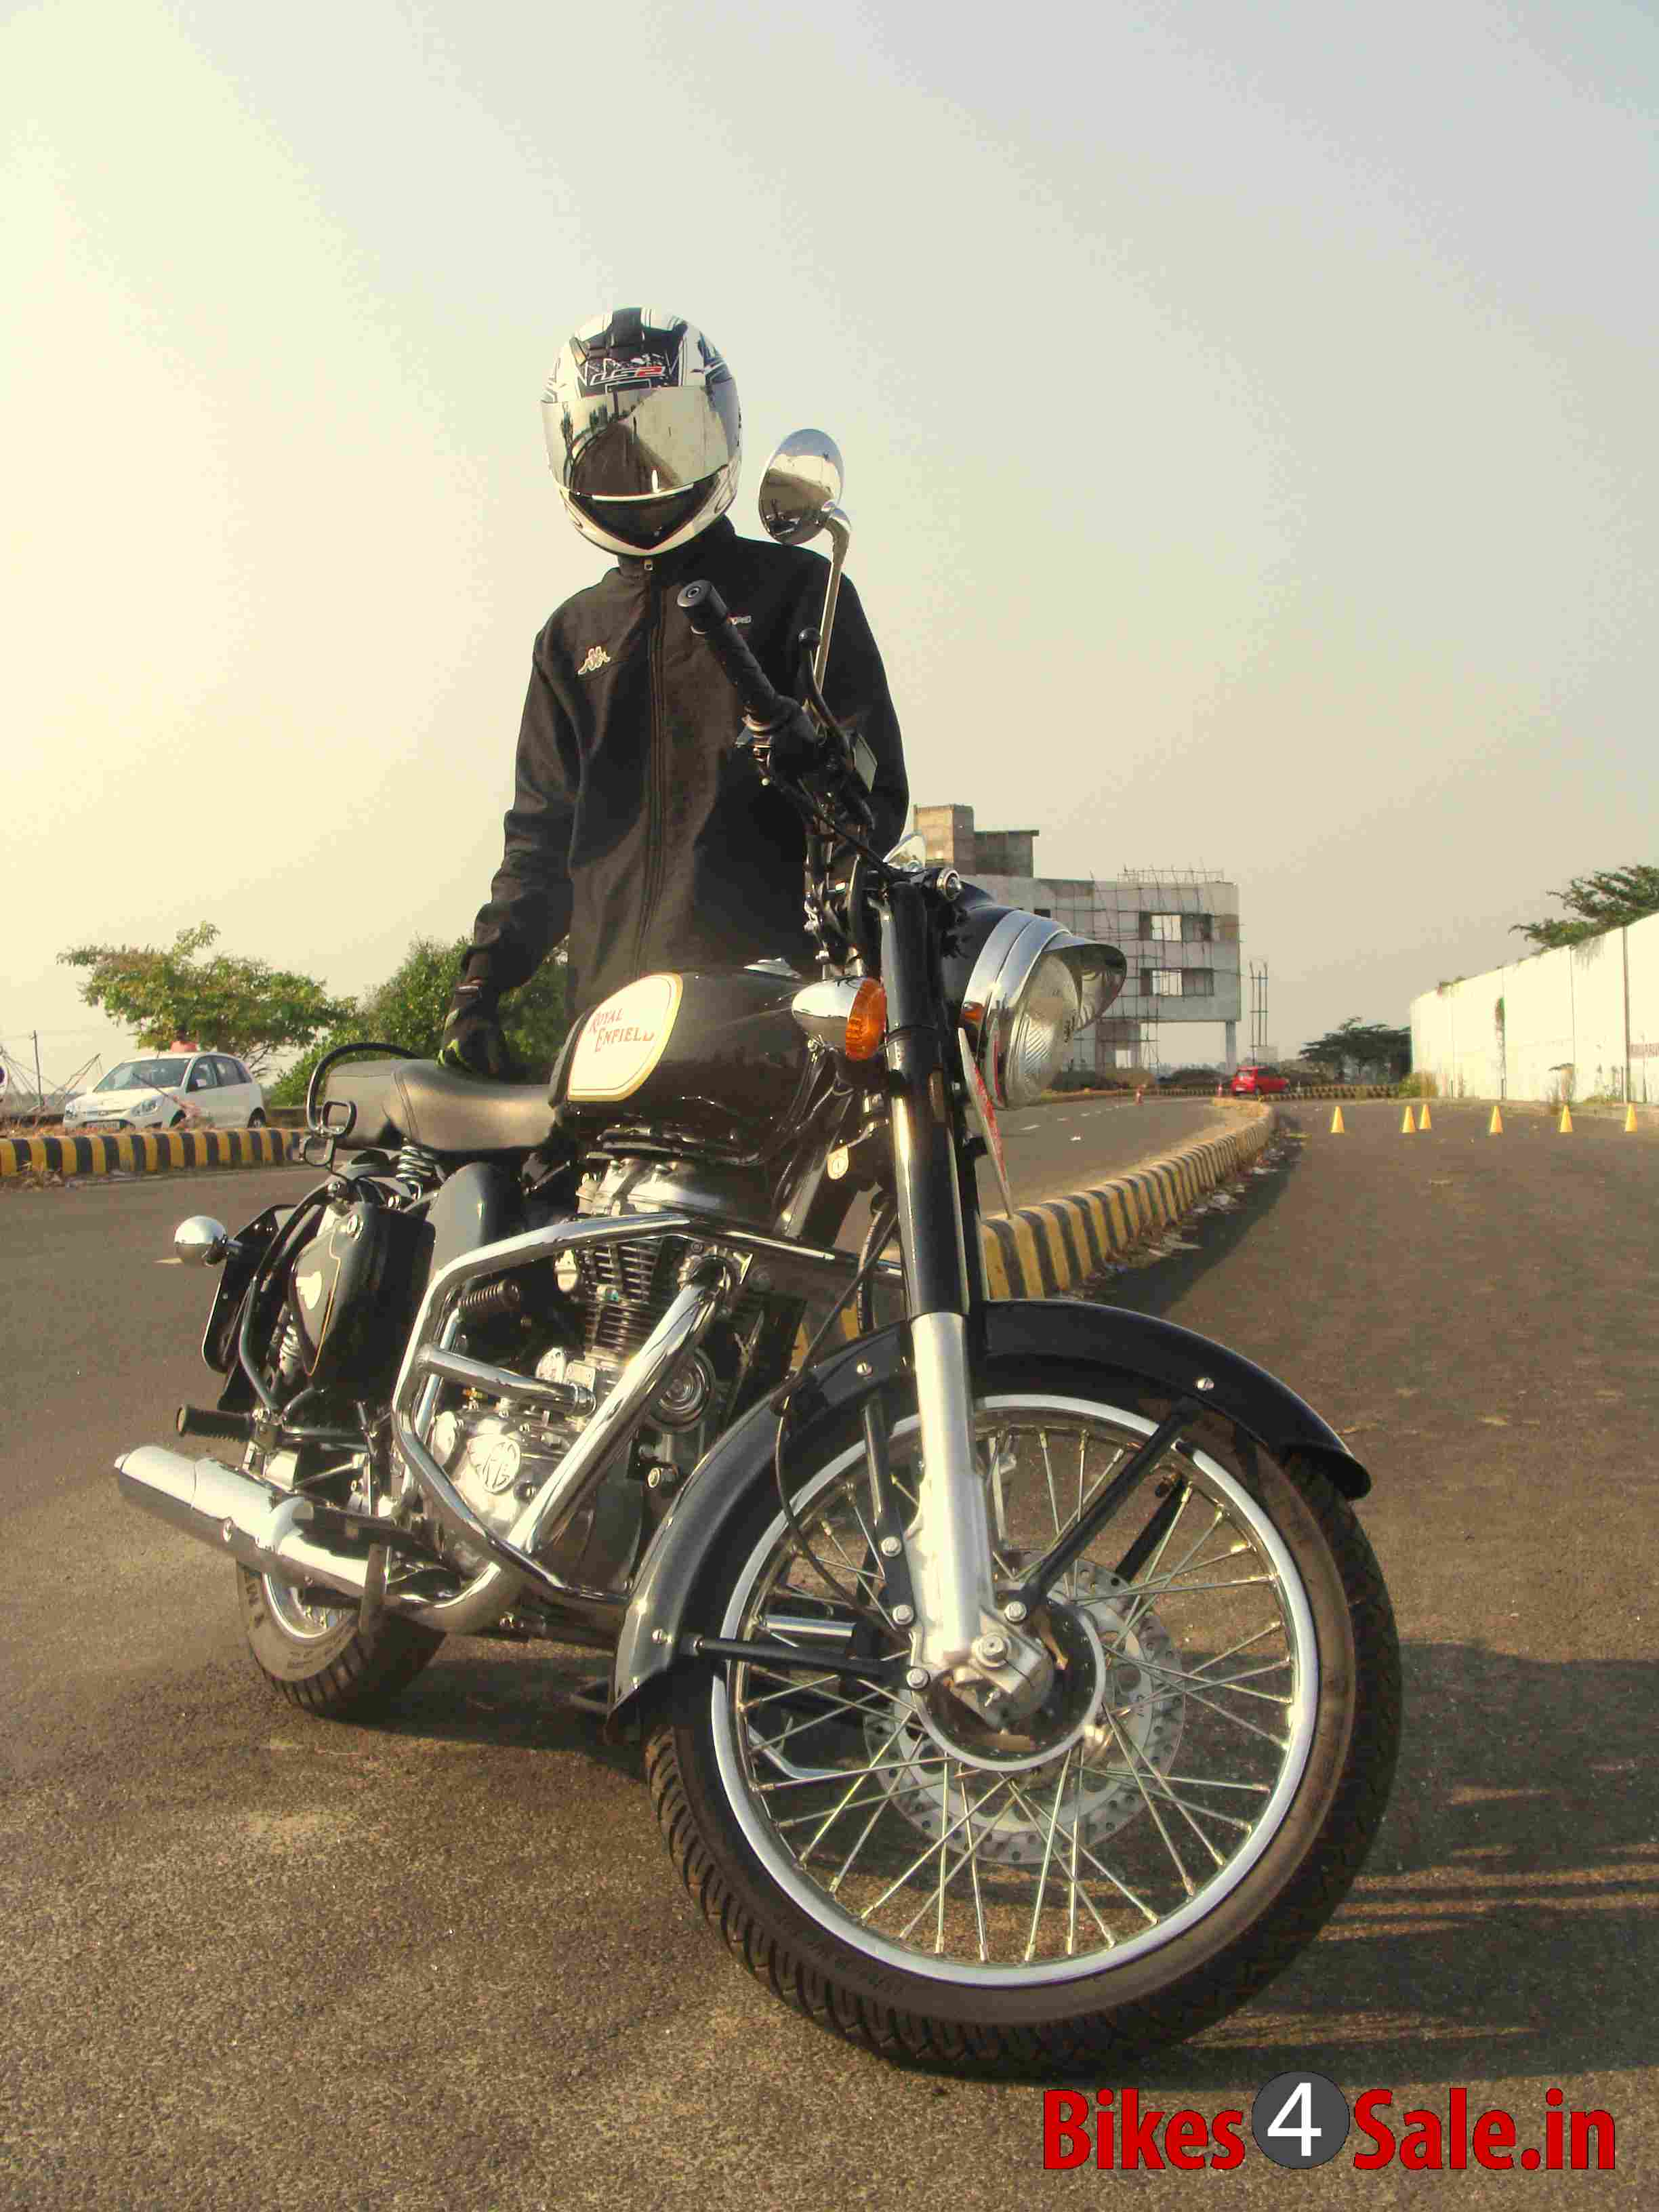 Royal Enfield Classic 350 User Review by Jose Gonsalo